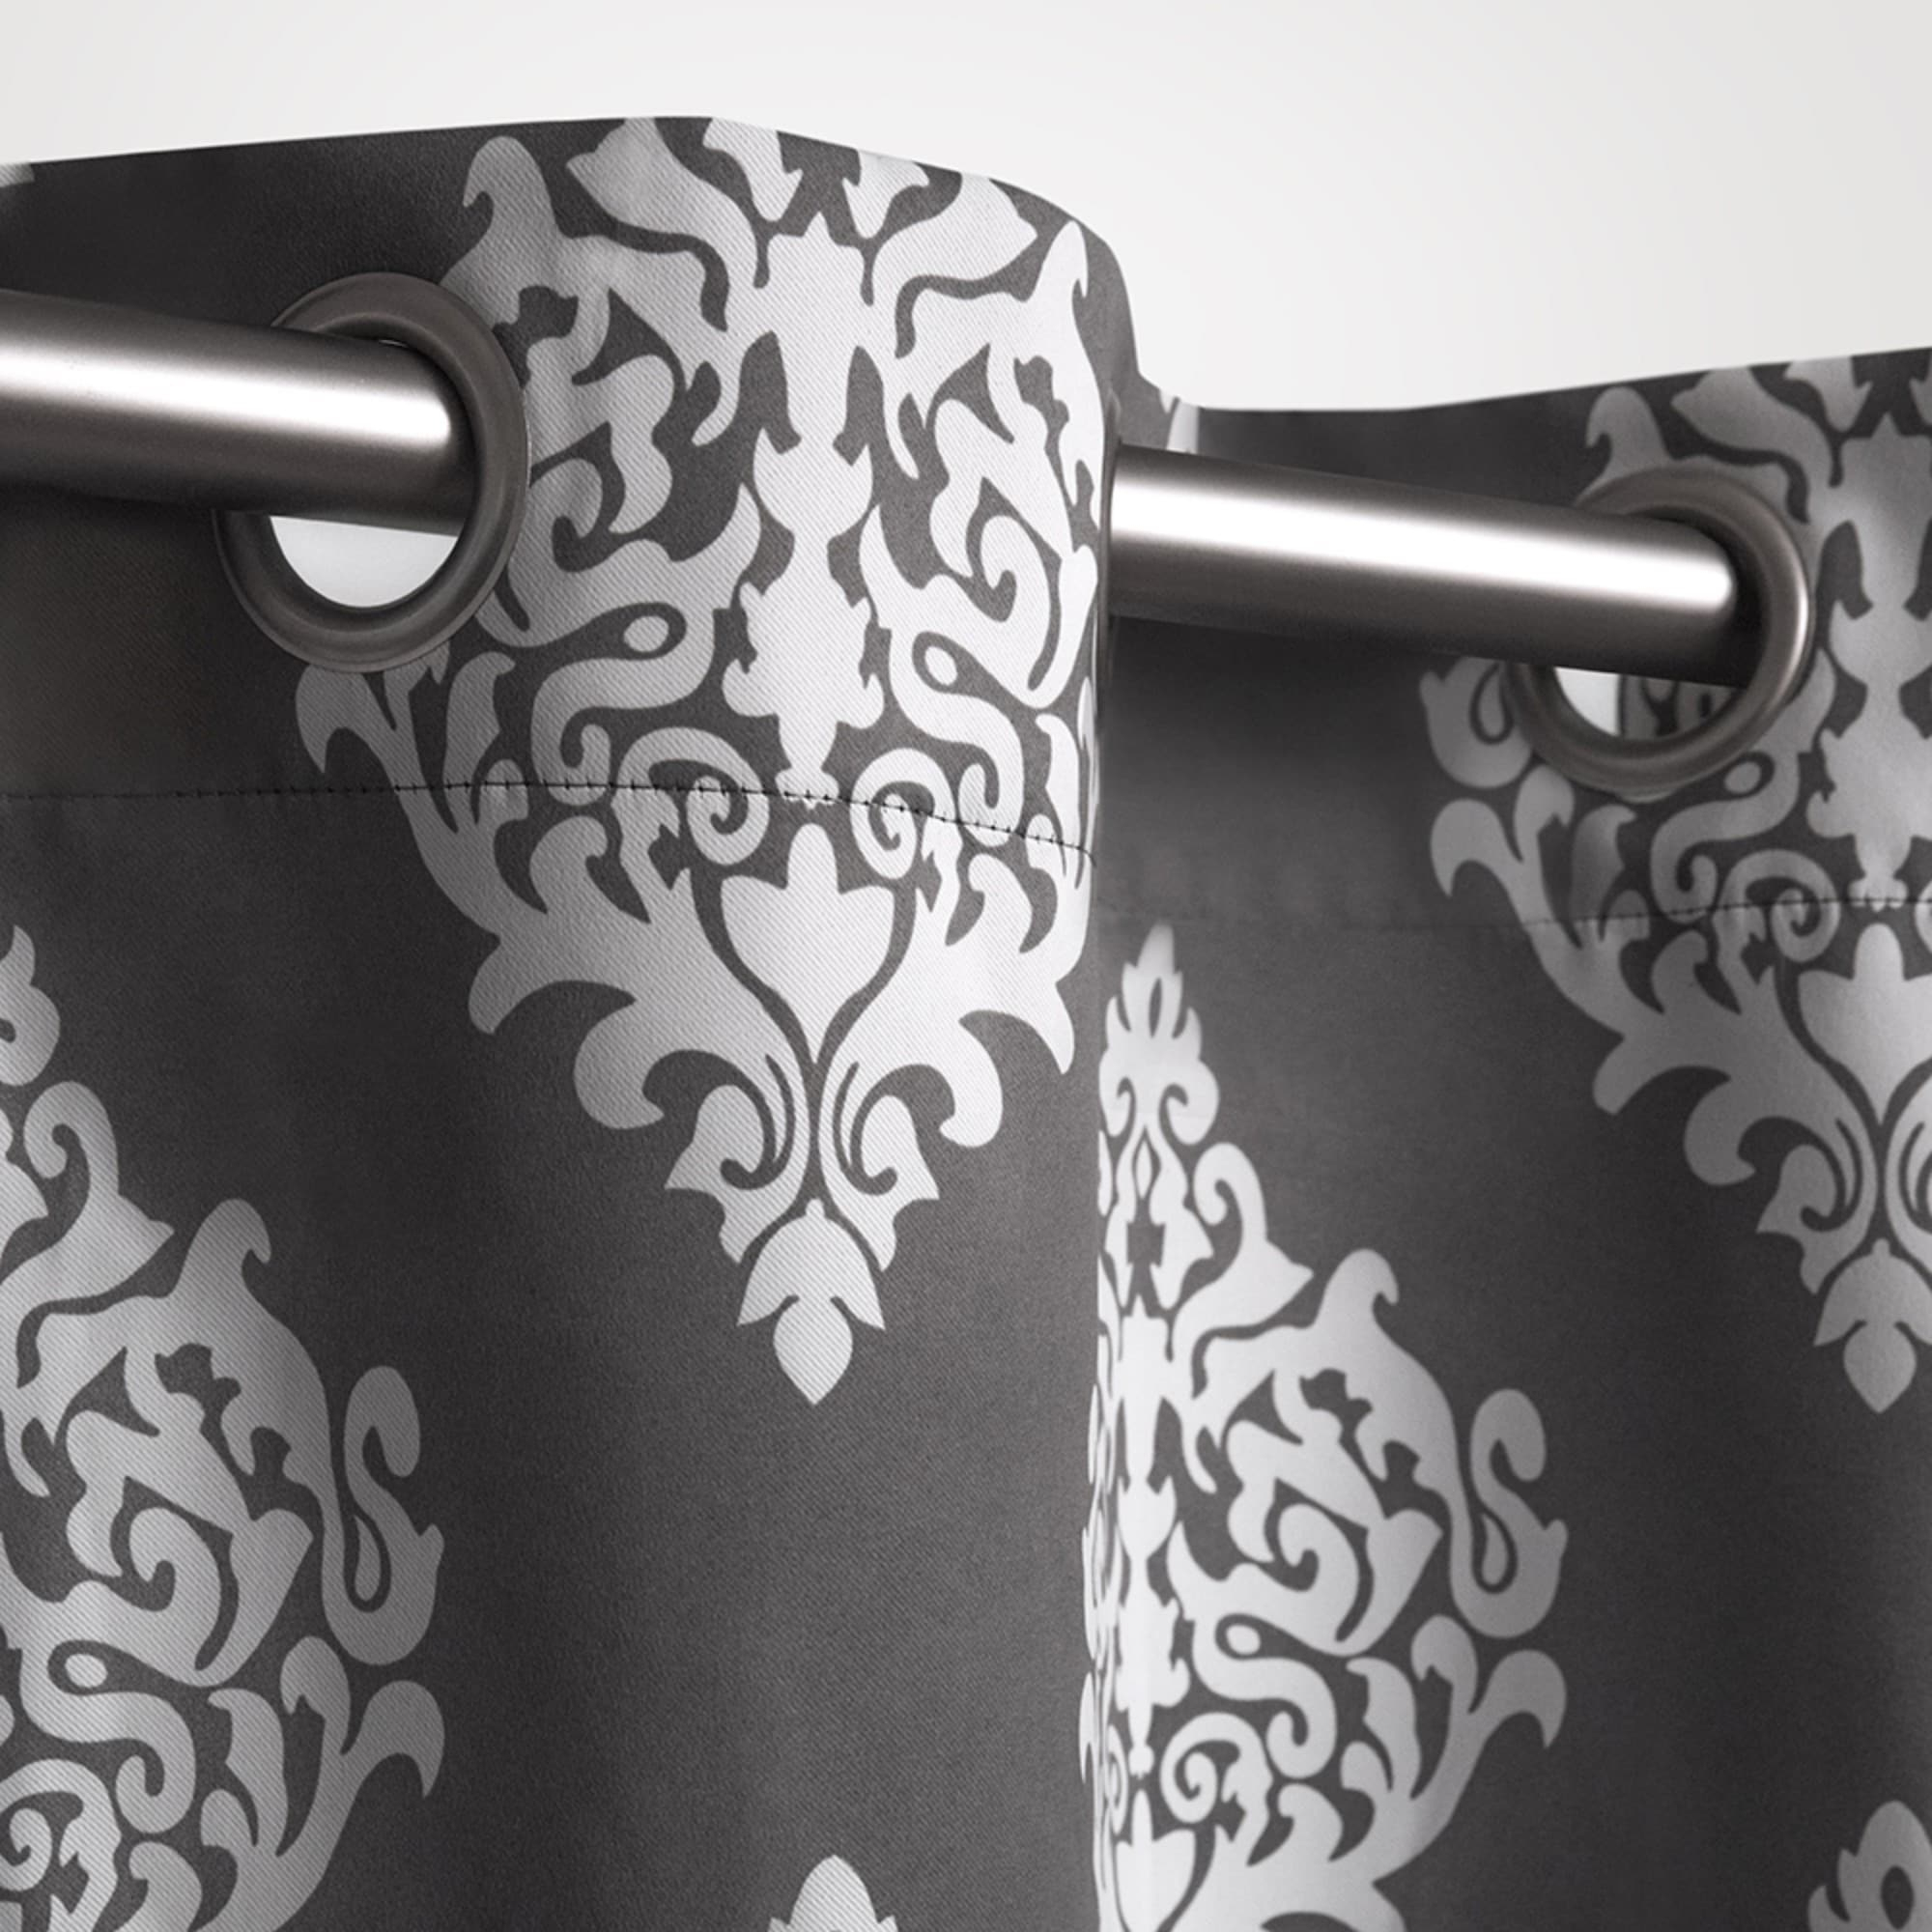 Gracewood Hollow Tucakovic Energy Efficient Fabric Blackout Curtains With Regard To Fashionable Gracewood Hollow Corine Medallion Pattern Blackout Curtain Panel Pair (View 14 of 20)